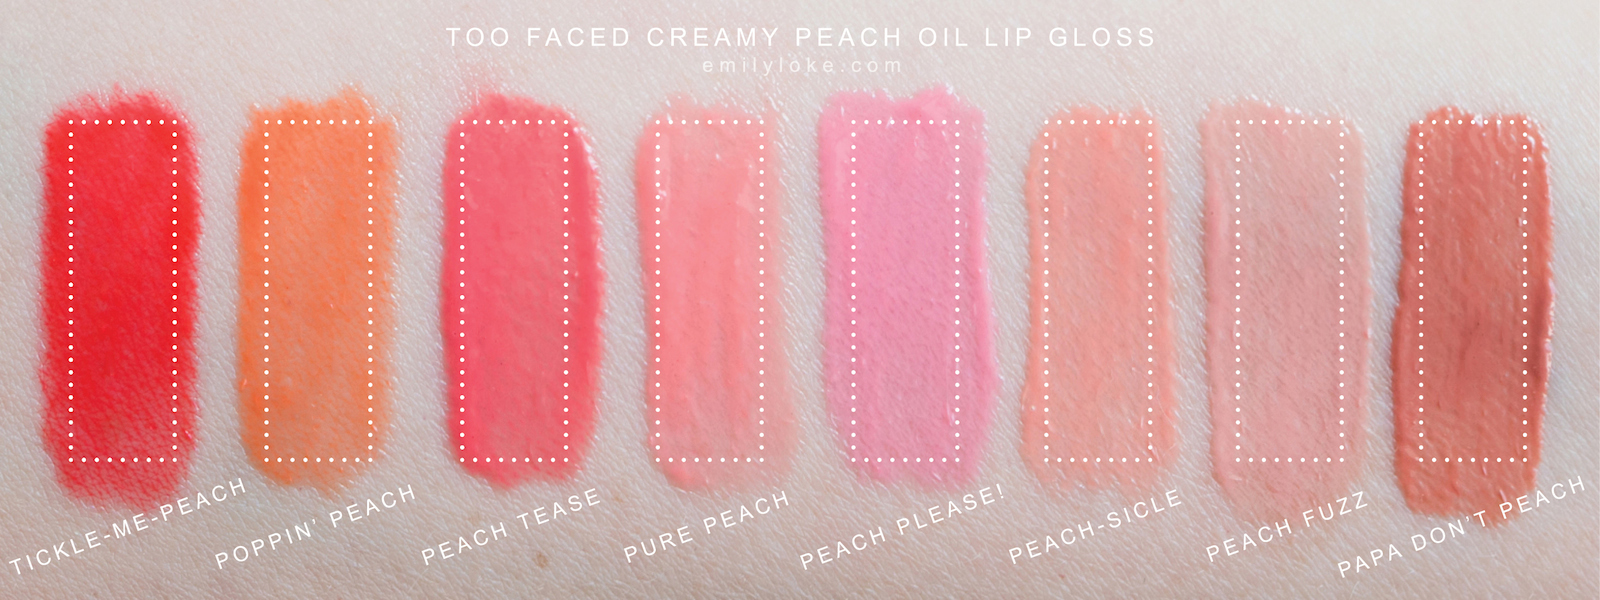 too faced peach oil lip gloss swatches